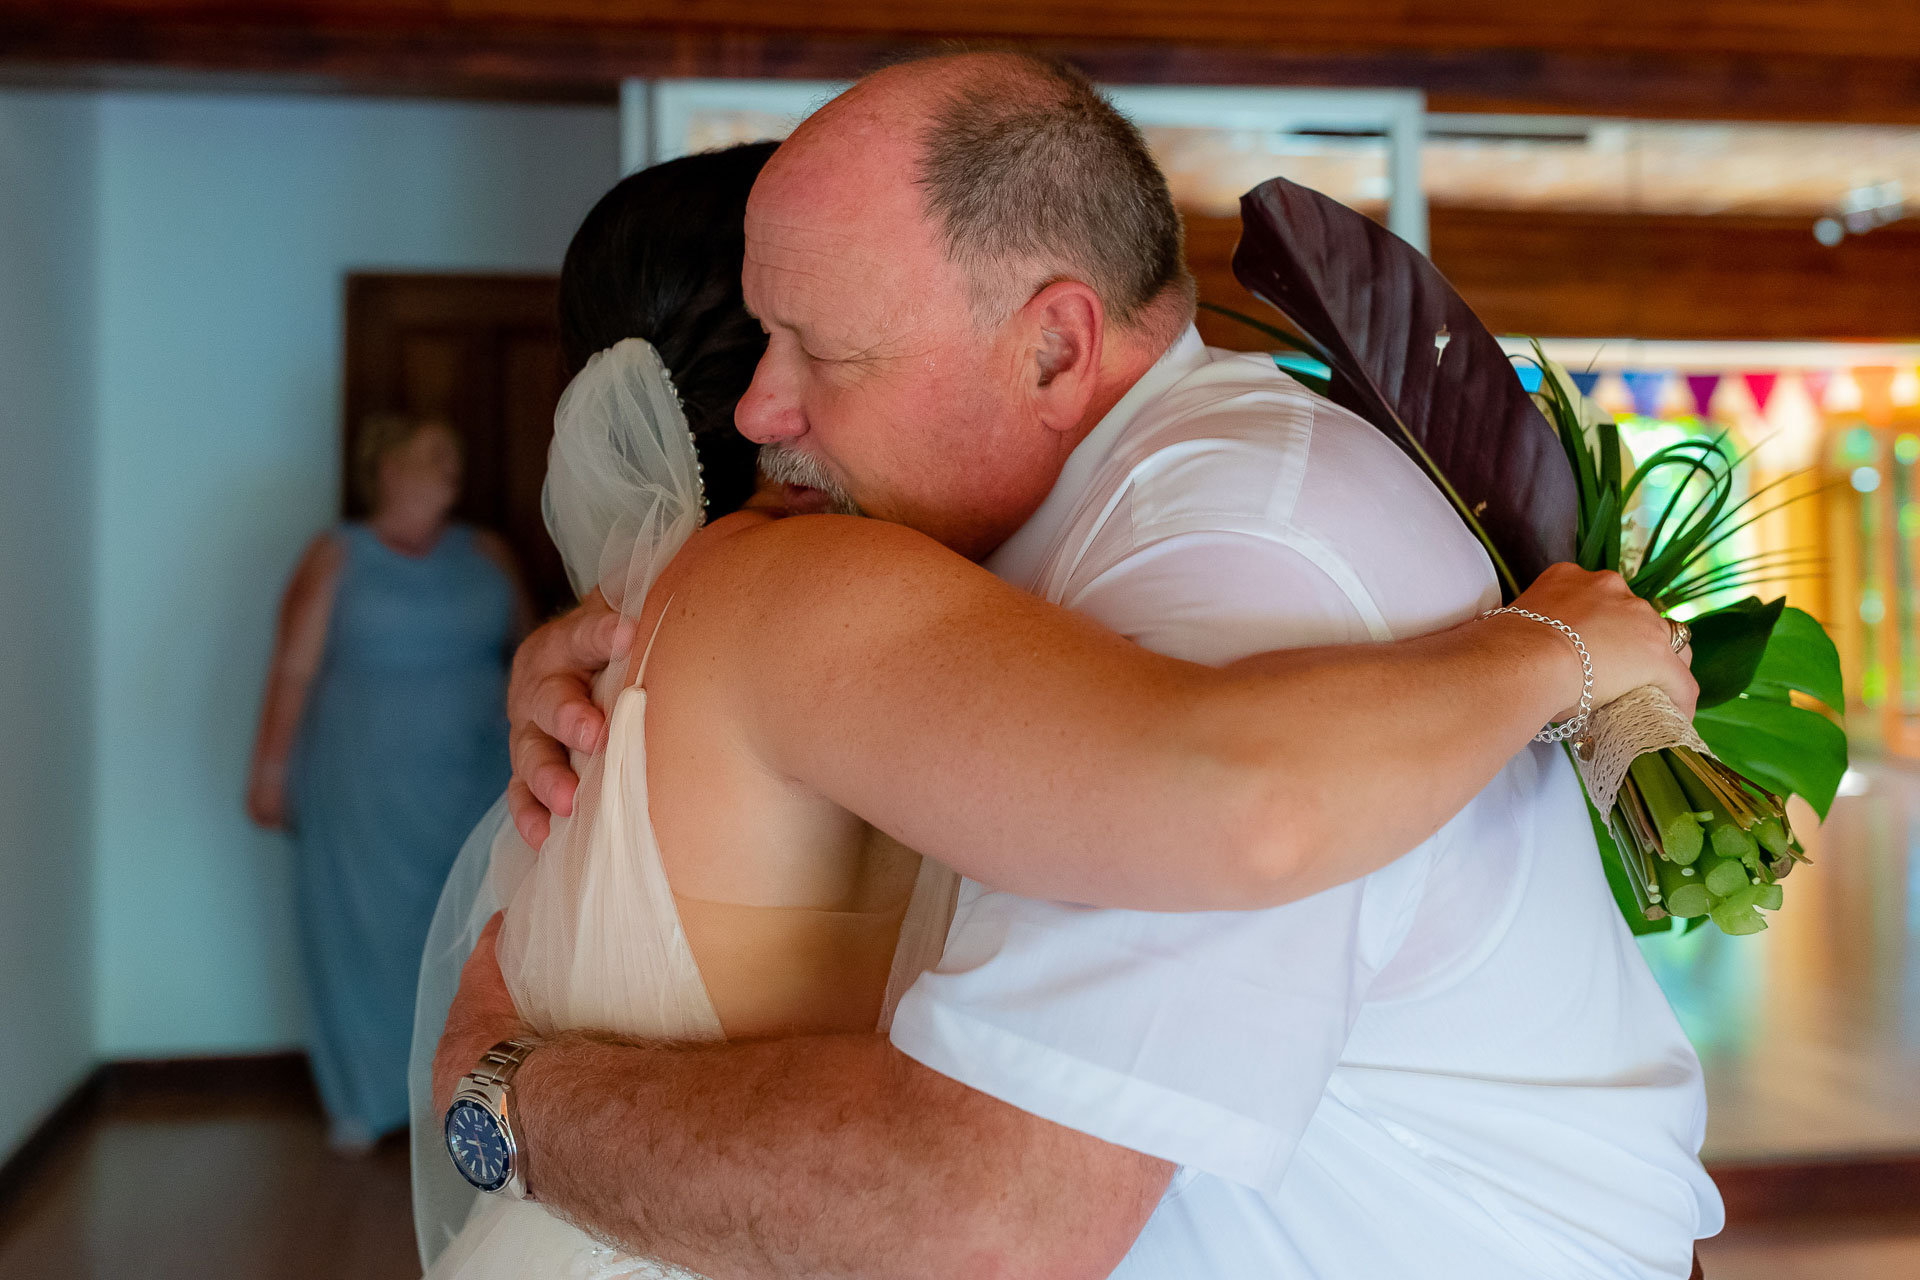 Jaco, Costa Rica Elopement Father Hug Photo   father gives the bride a hug before walking her down the aisle